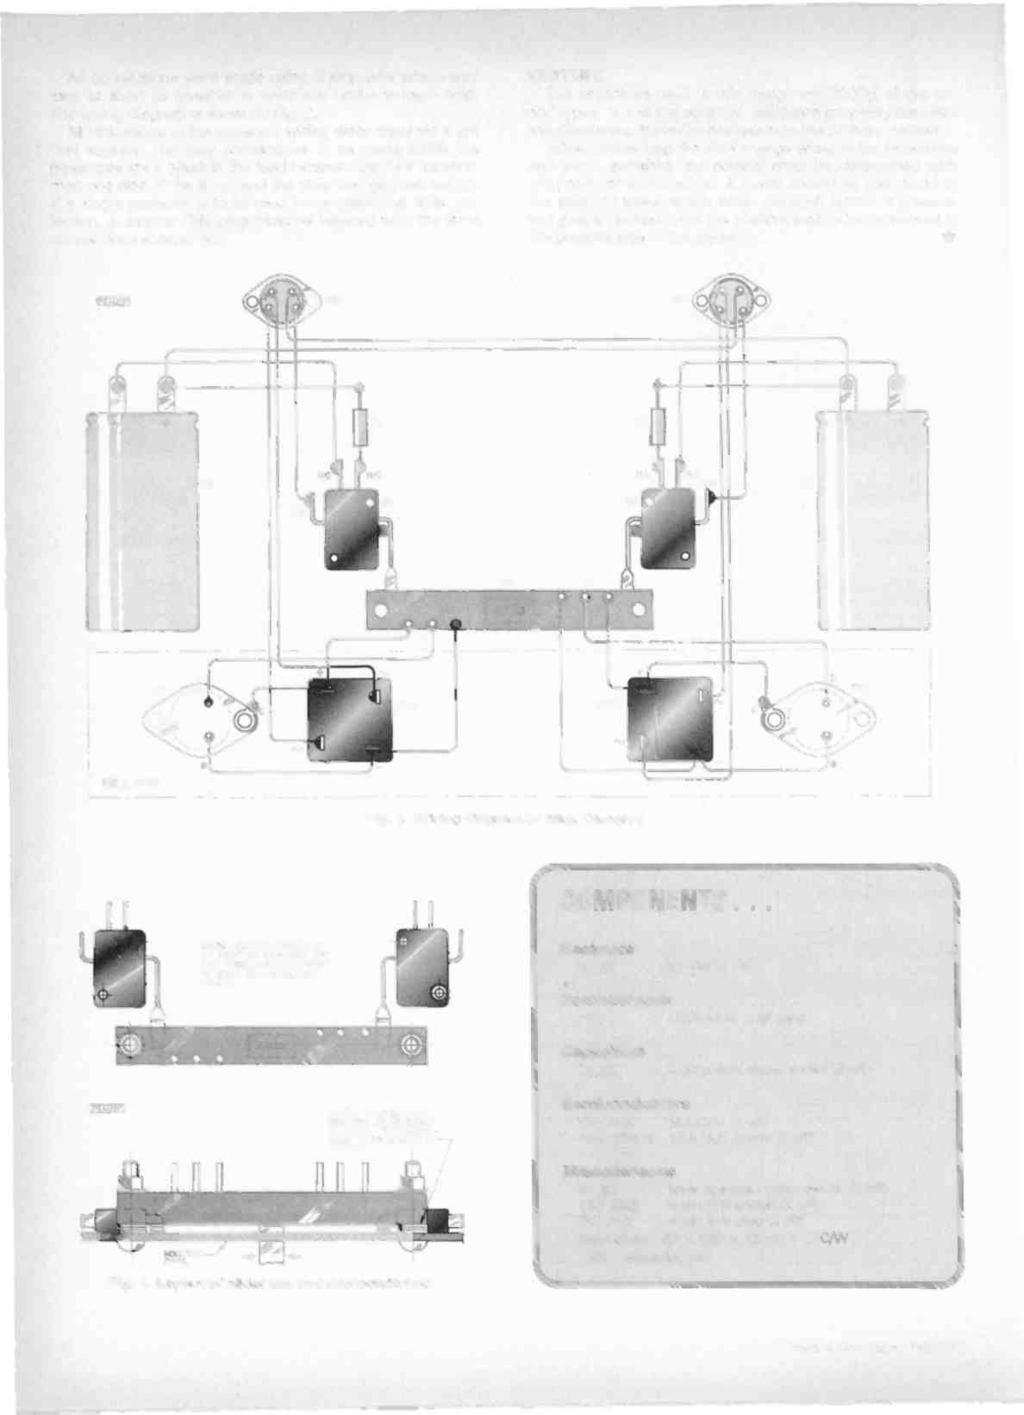 Electron Cs Isu Ige Practi Cal Sli 90p July 1984 Logic Analvbe F8 Arctic Cat Wiring Diagram Free Download Schematic Circuit Of The Slide Dissolve Practical Electronics All Connections Were Made Using 8 Amp Wire Which Was Kept As Short Possible To